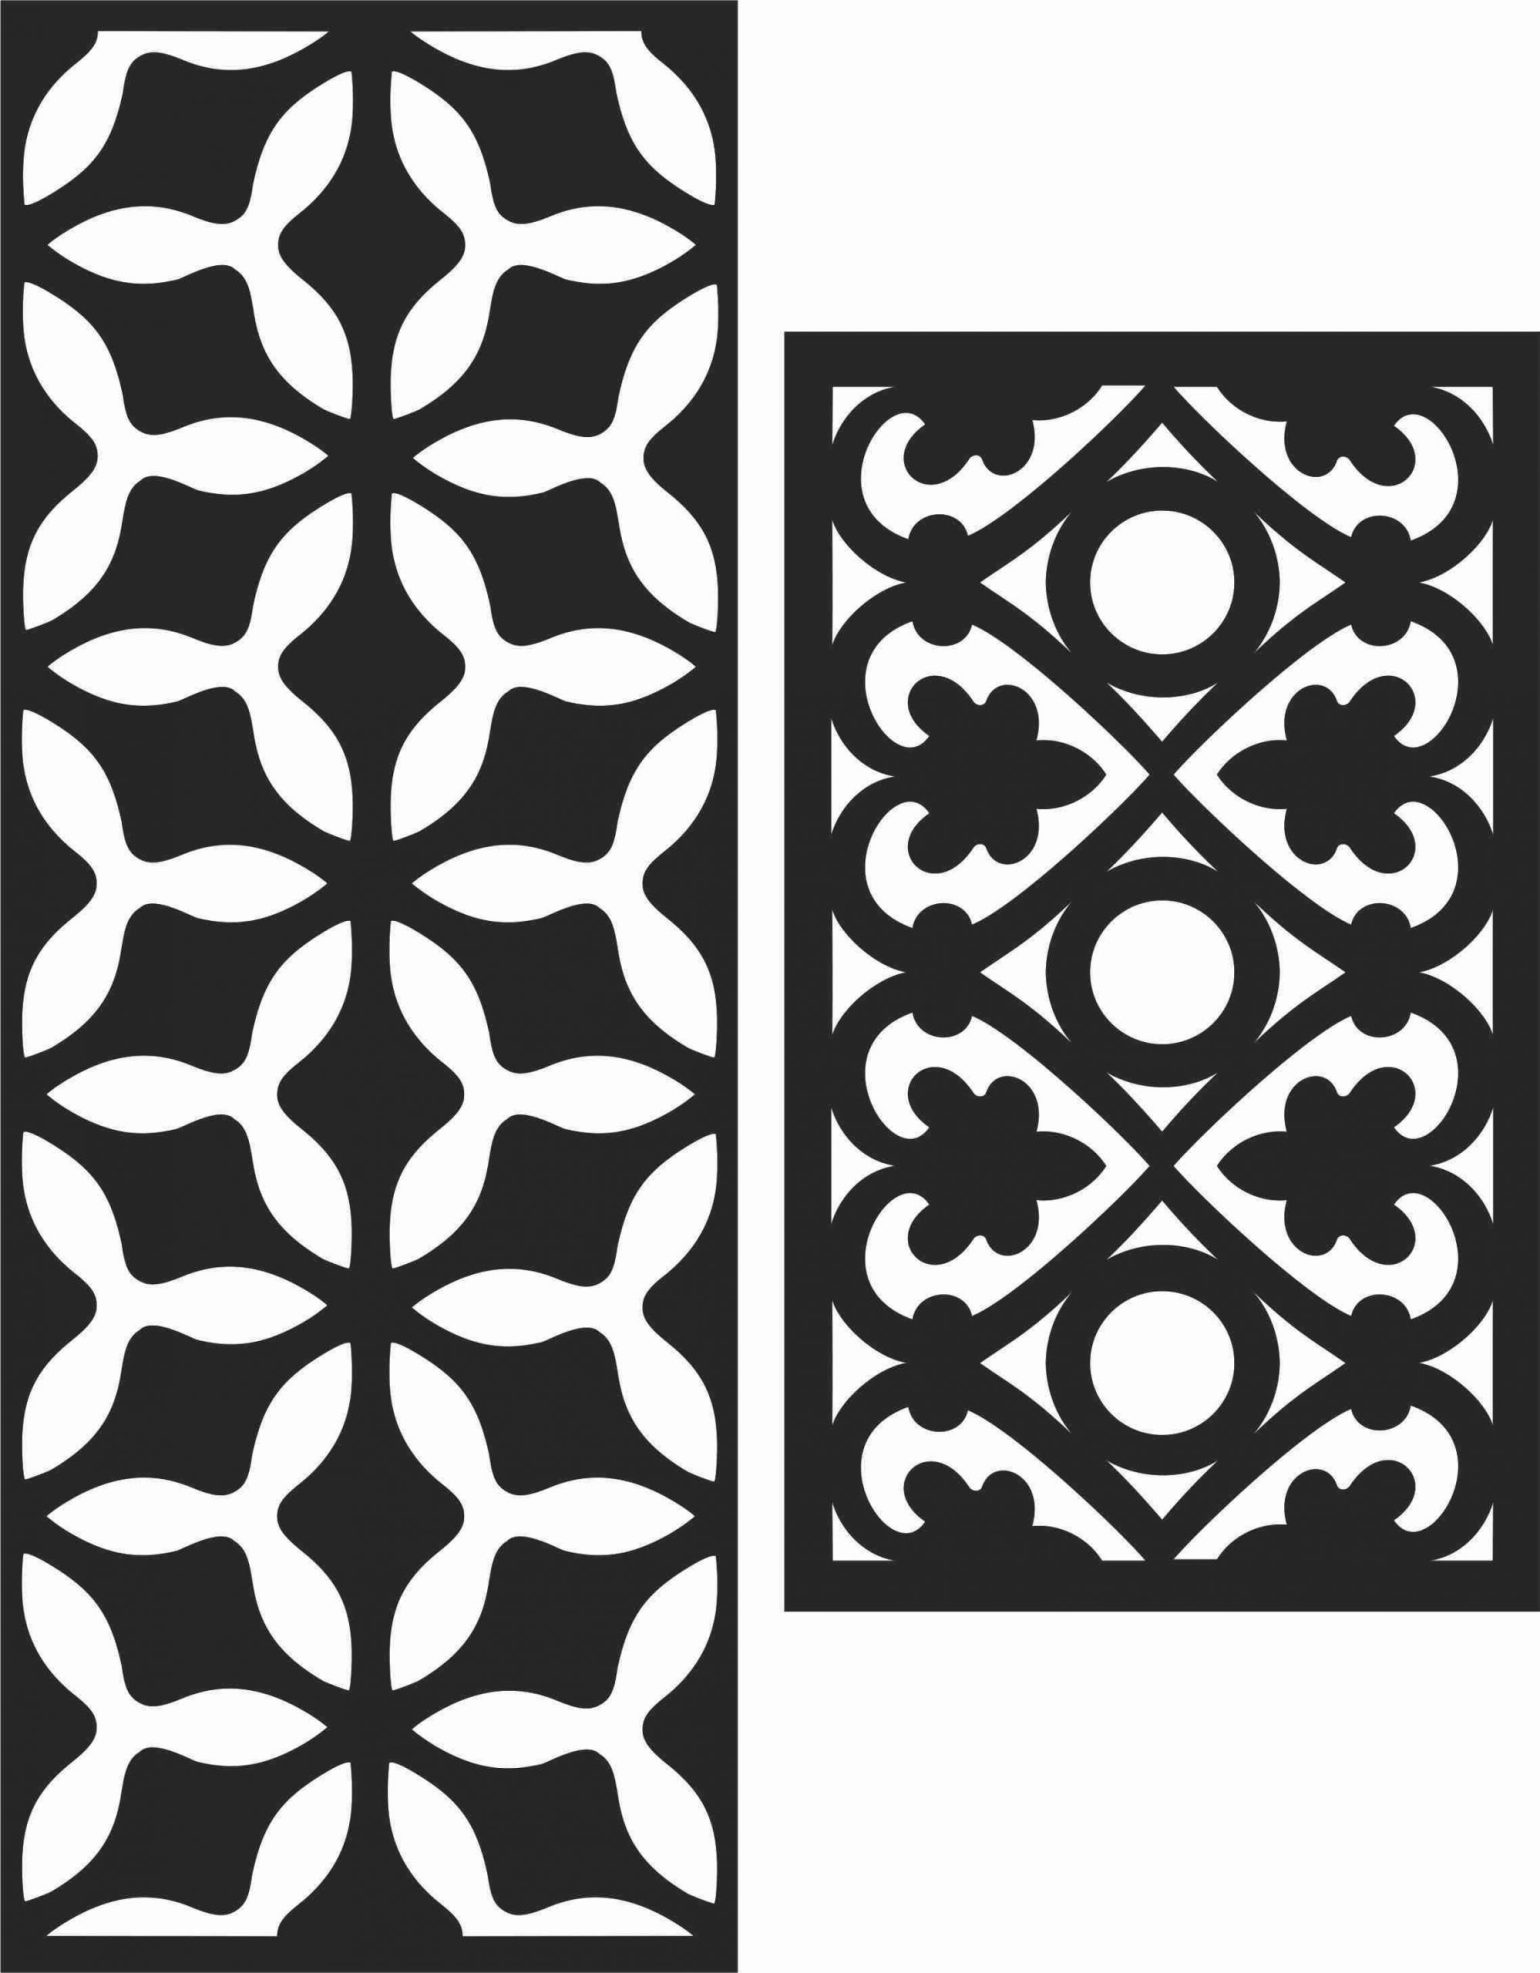 Floral Screen Patterns Design 37 Free DXF File